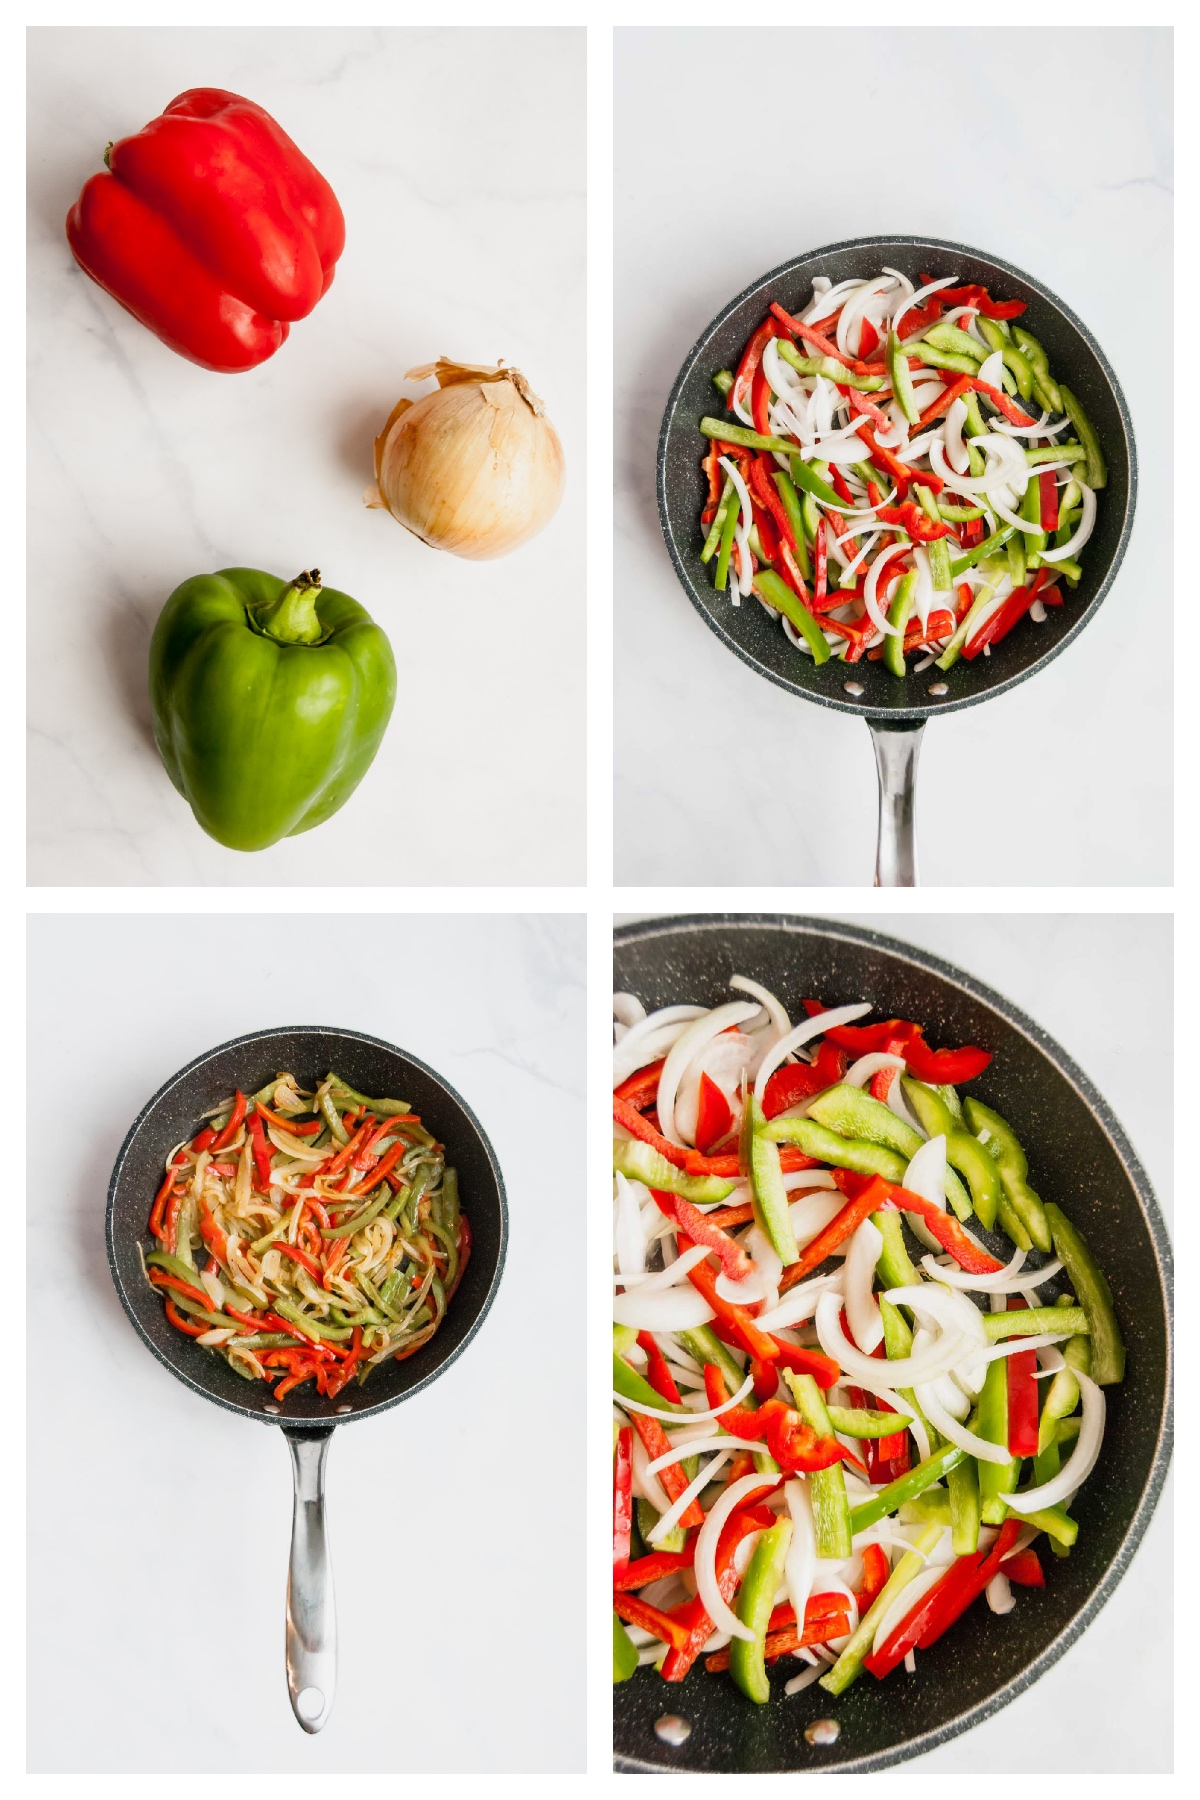 Photo gallery of four pictures of bell peppers and onions in a pan.